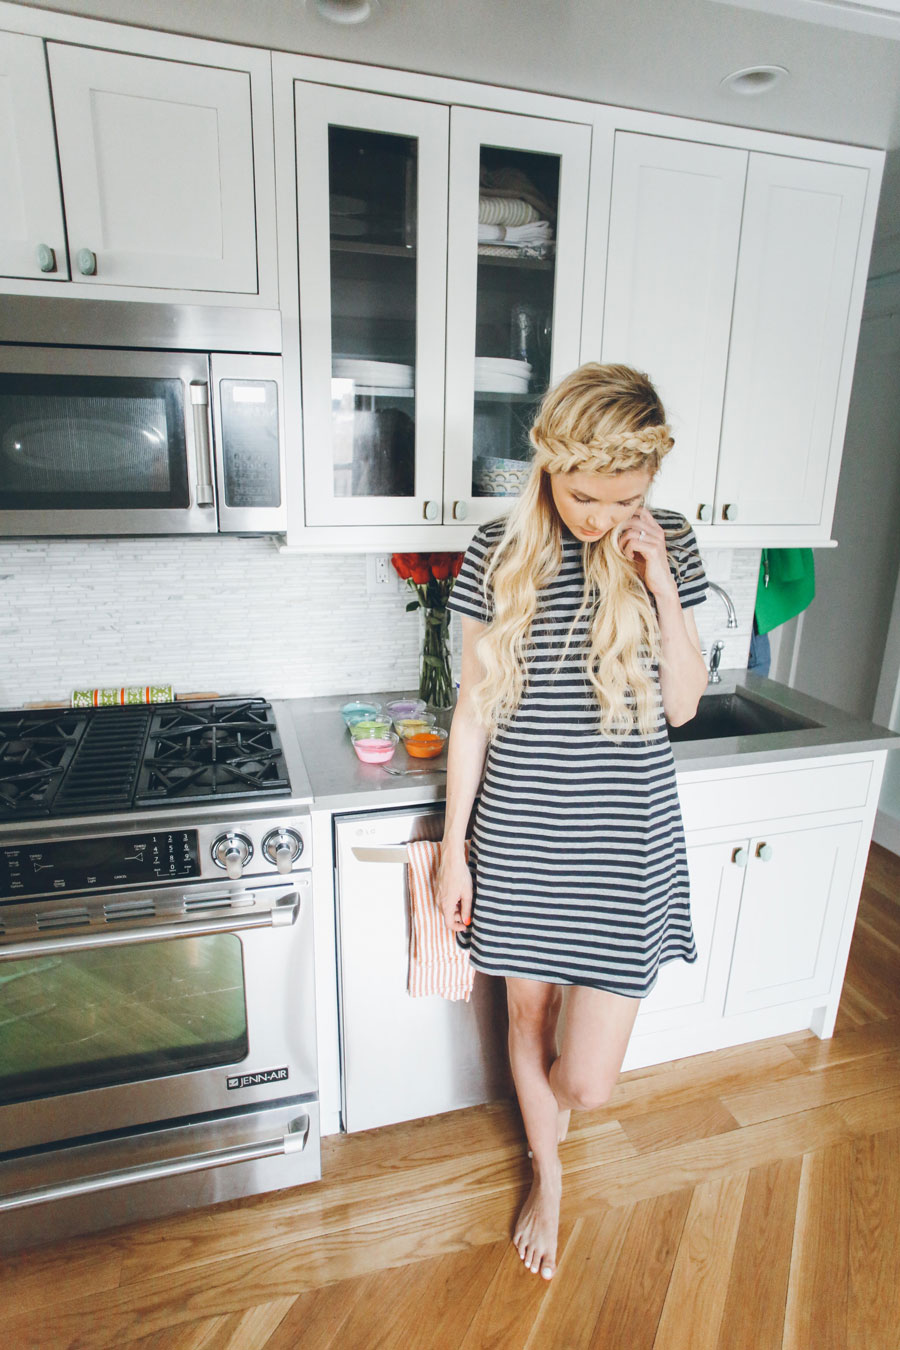 Life Is Good Barefoot Blonde By Amber Fillerup Clark